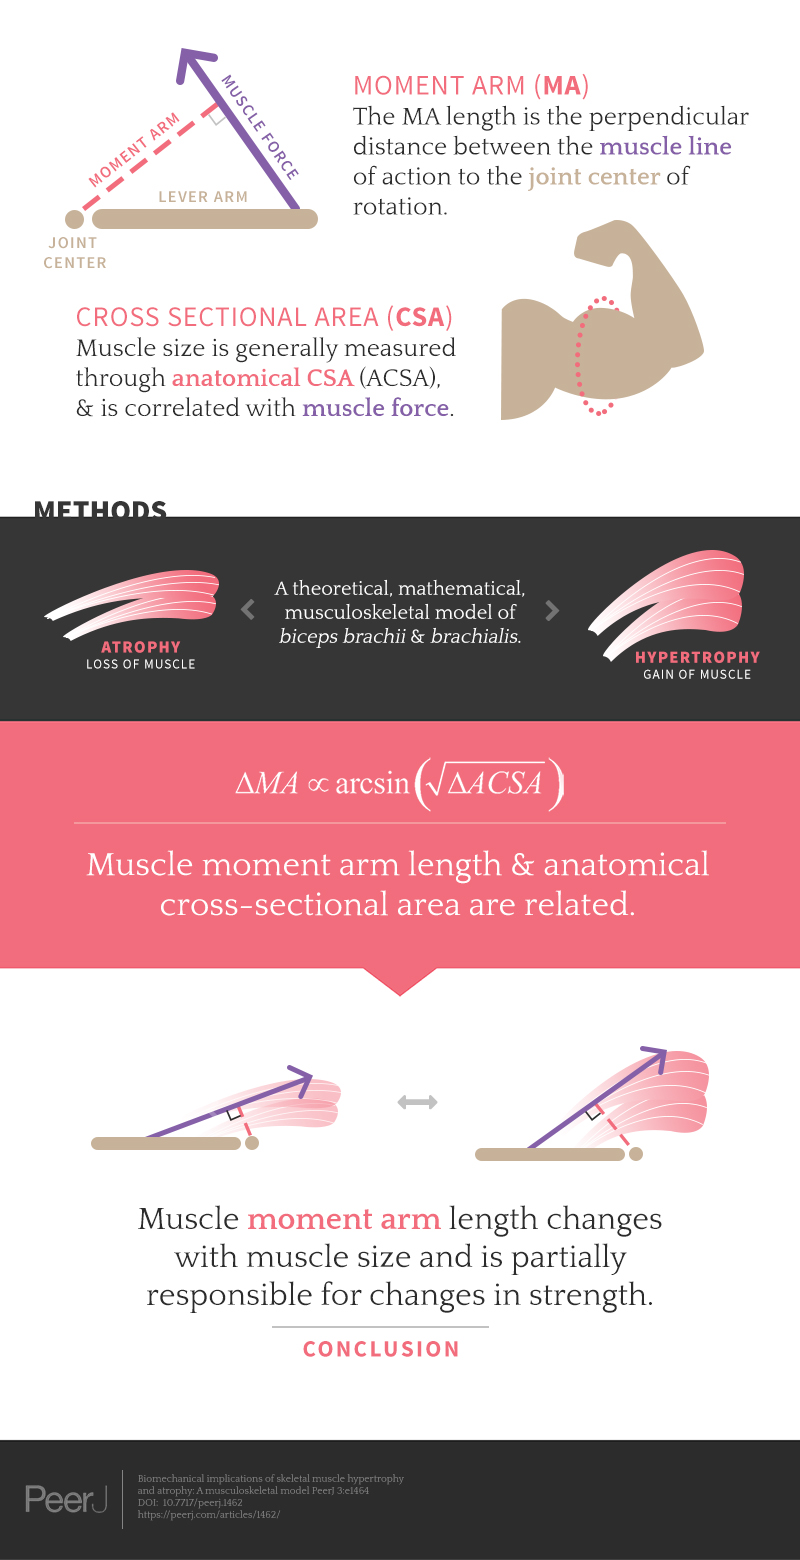 Biomechanical implications of skeletal muscle hypertrophy and